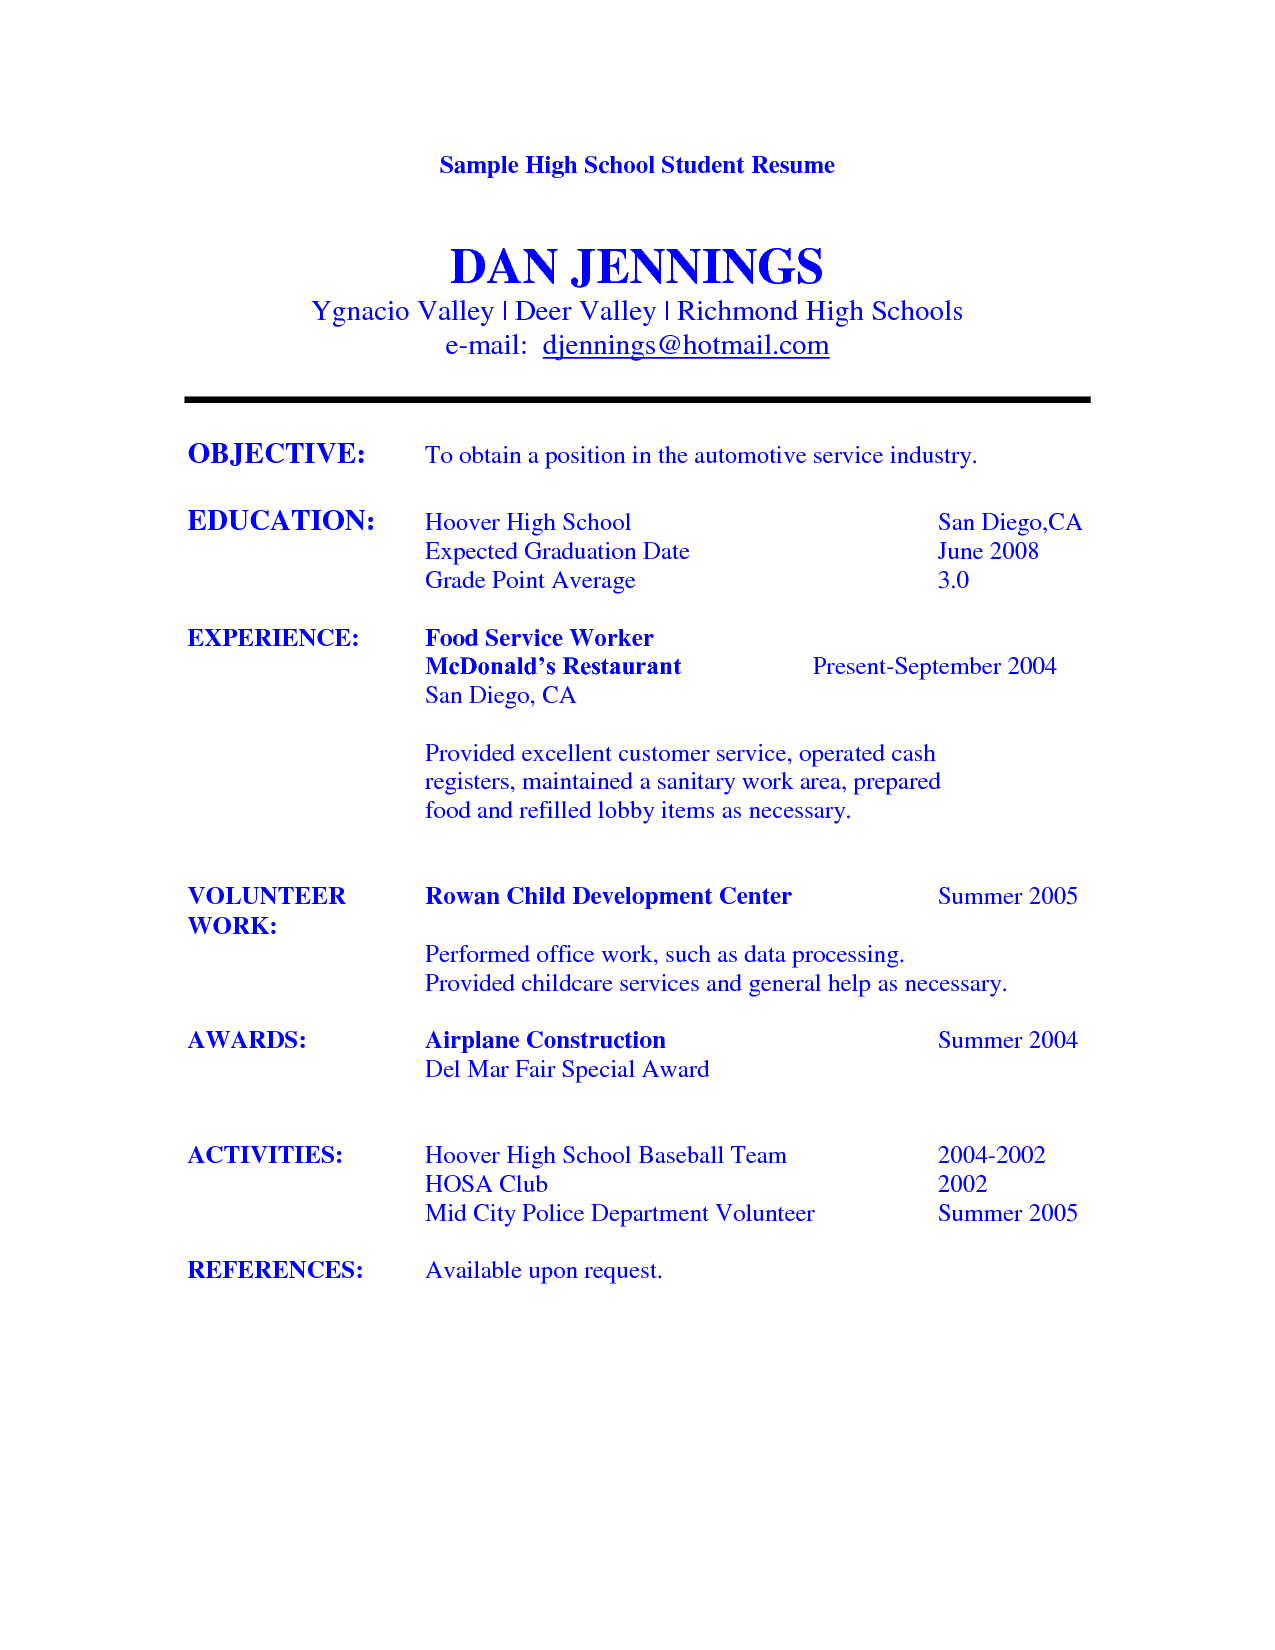 resume format for high school students #format #resume #school